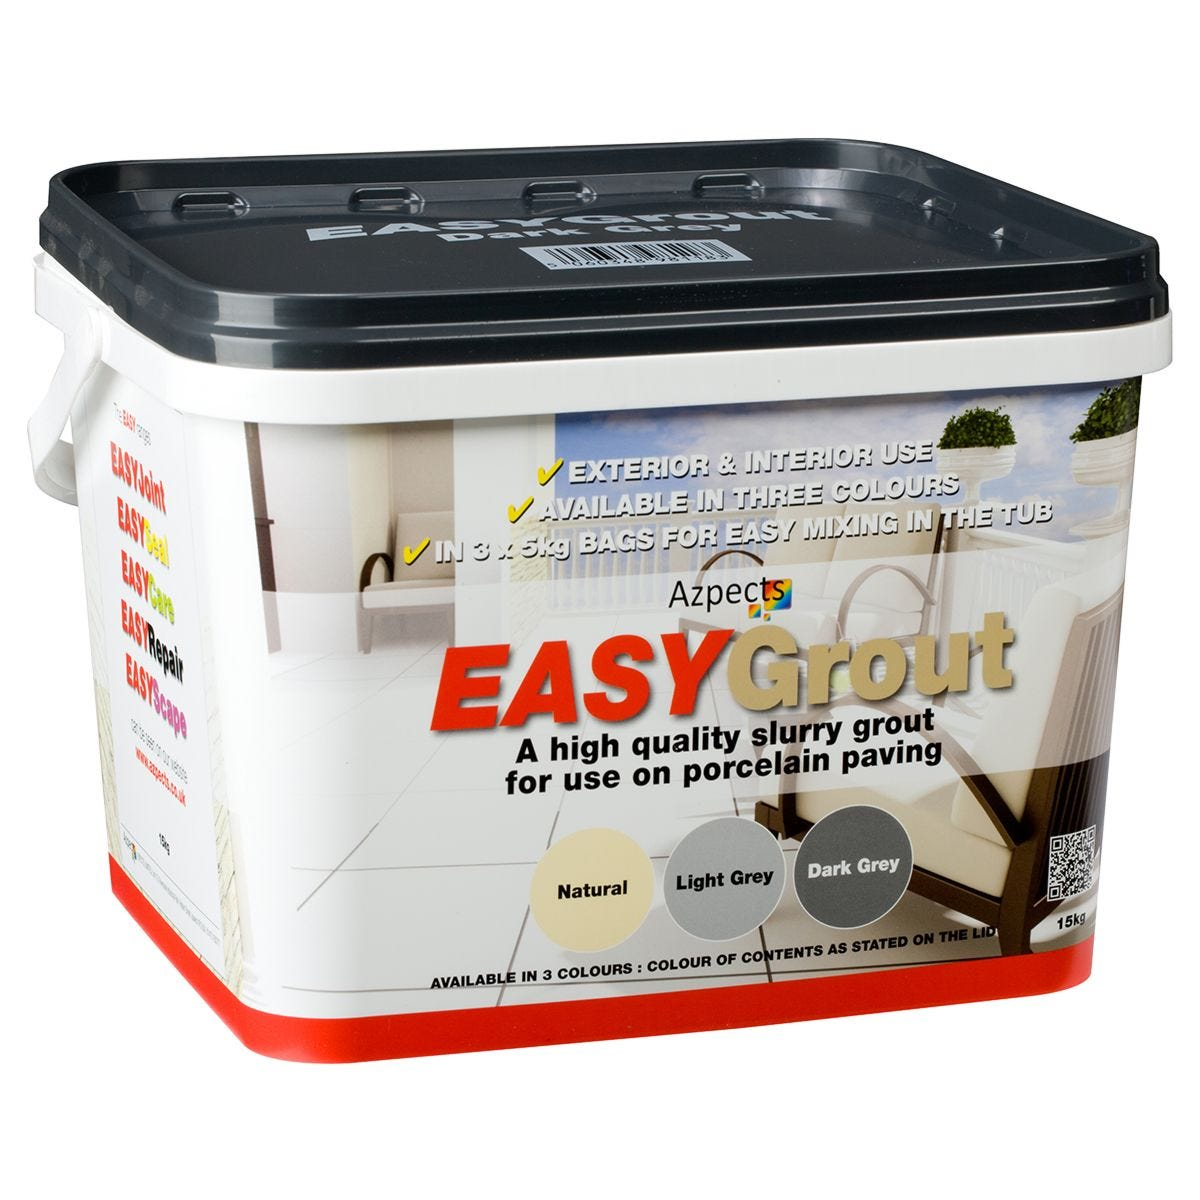 Azpects EASY Grout Dark Grey - 15Kg